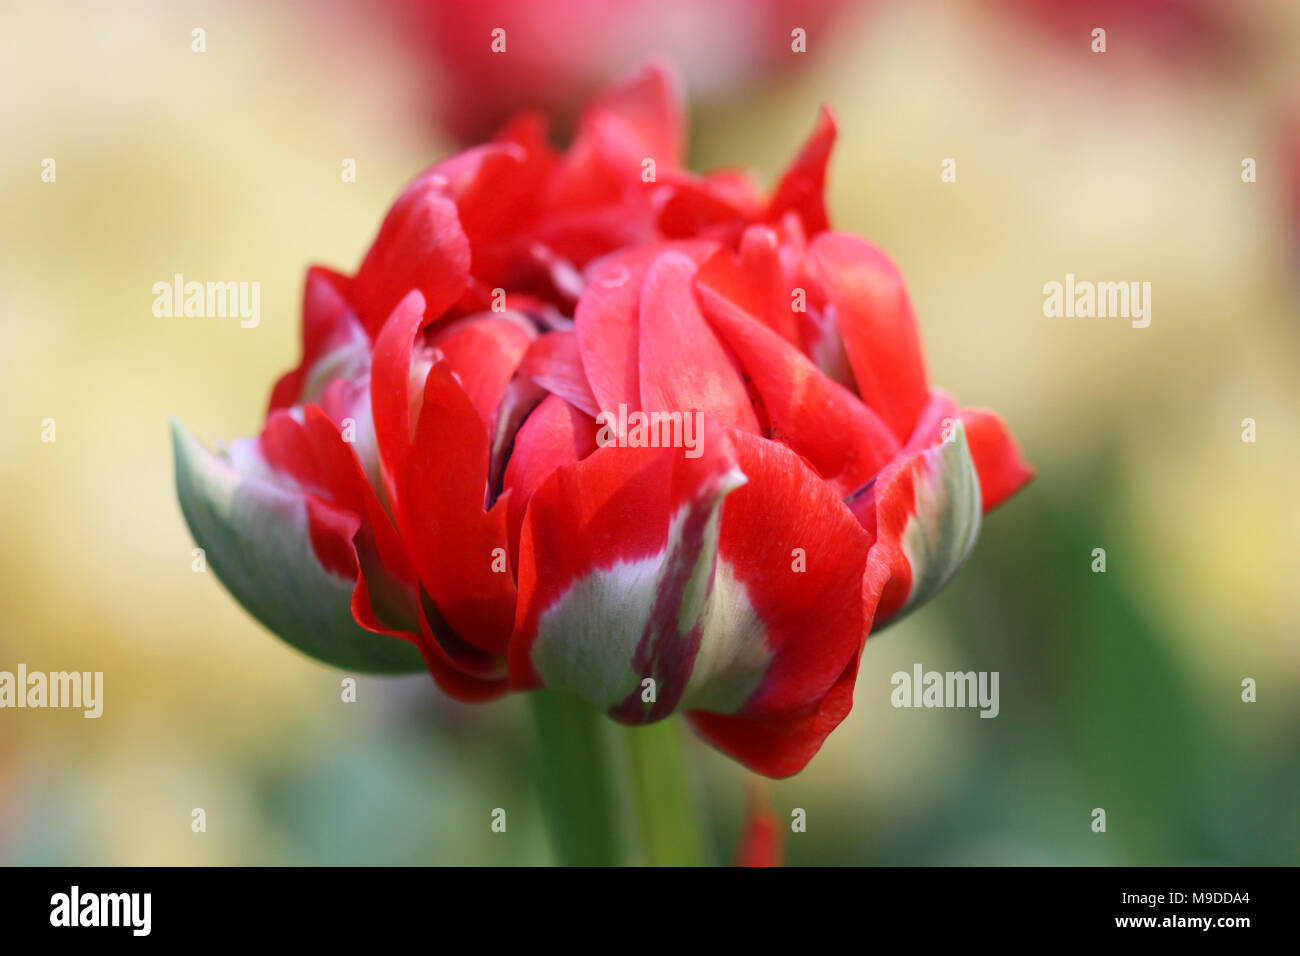 Tulip of a grade of 'Rococo' a close up horizontally on blurring a background.Liliaceae Family. Tulipa. - Stock Image